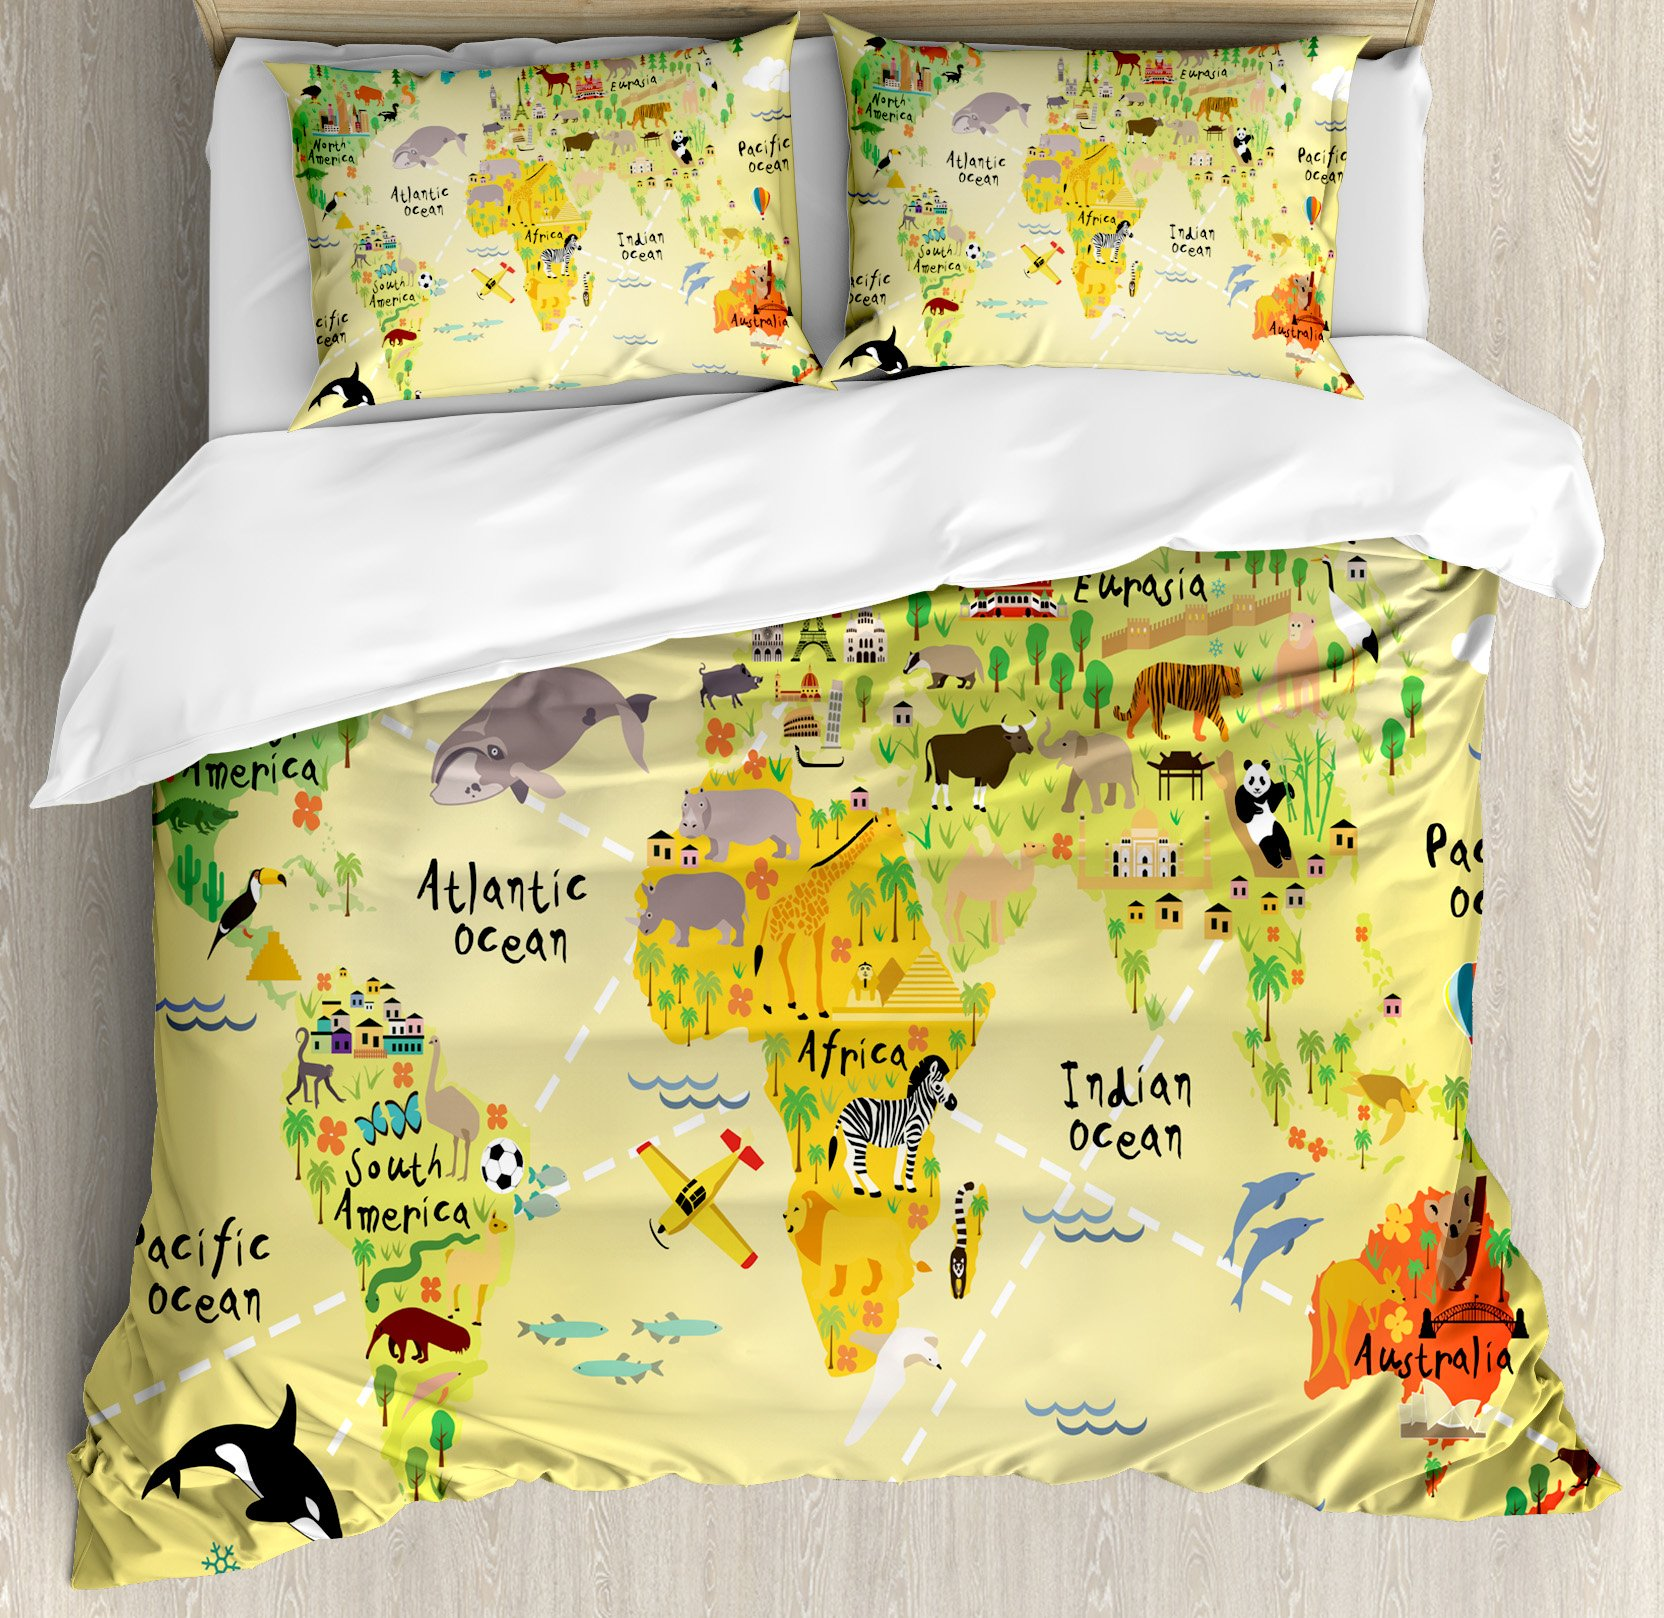 Kids Decor King Size Duvet Cover Set by Ambesonne, Educational World Map Africa America Penguins Atlantic Pacific Ocean Animals Australia Panda, Decorative 3 Piece Bedding Set with 2 Pillow Shams by Ambesonne